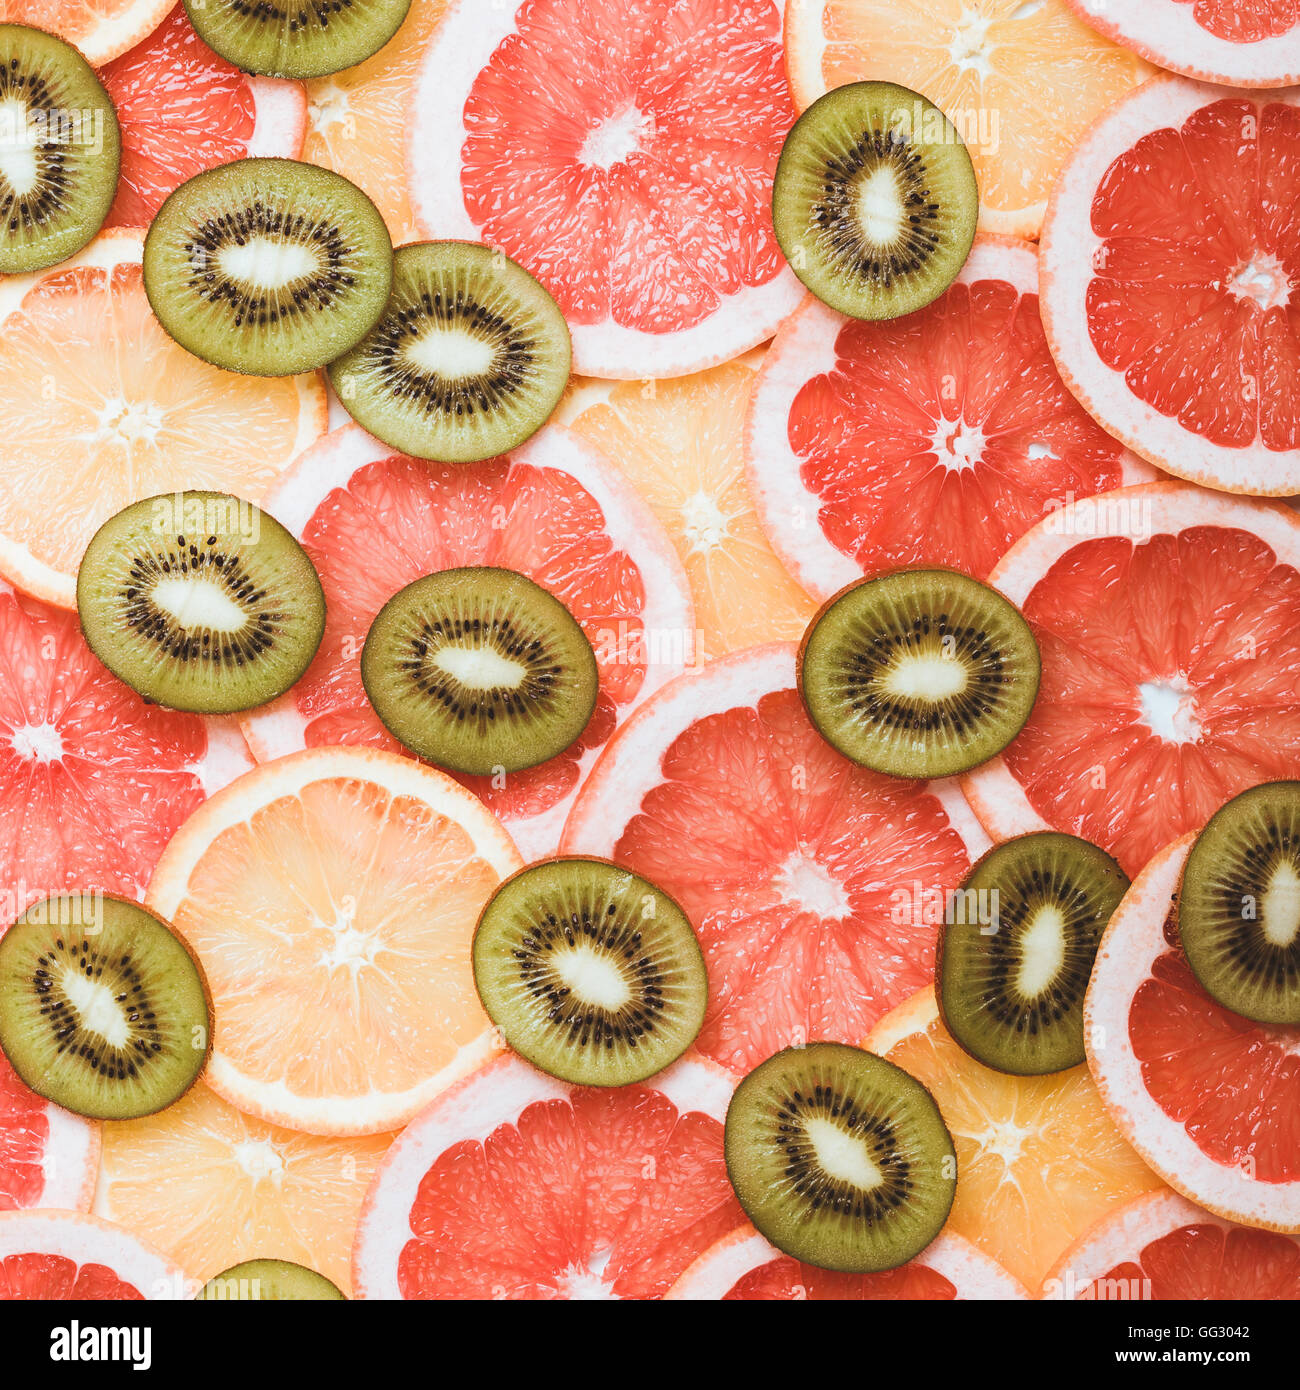 Fresh citrus fruits slices background viewed from above. Grapefruit, orange, kiwi pattern - Stock Image